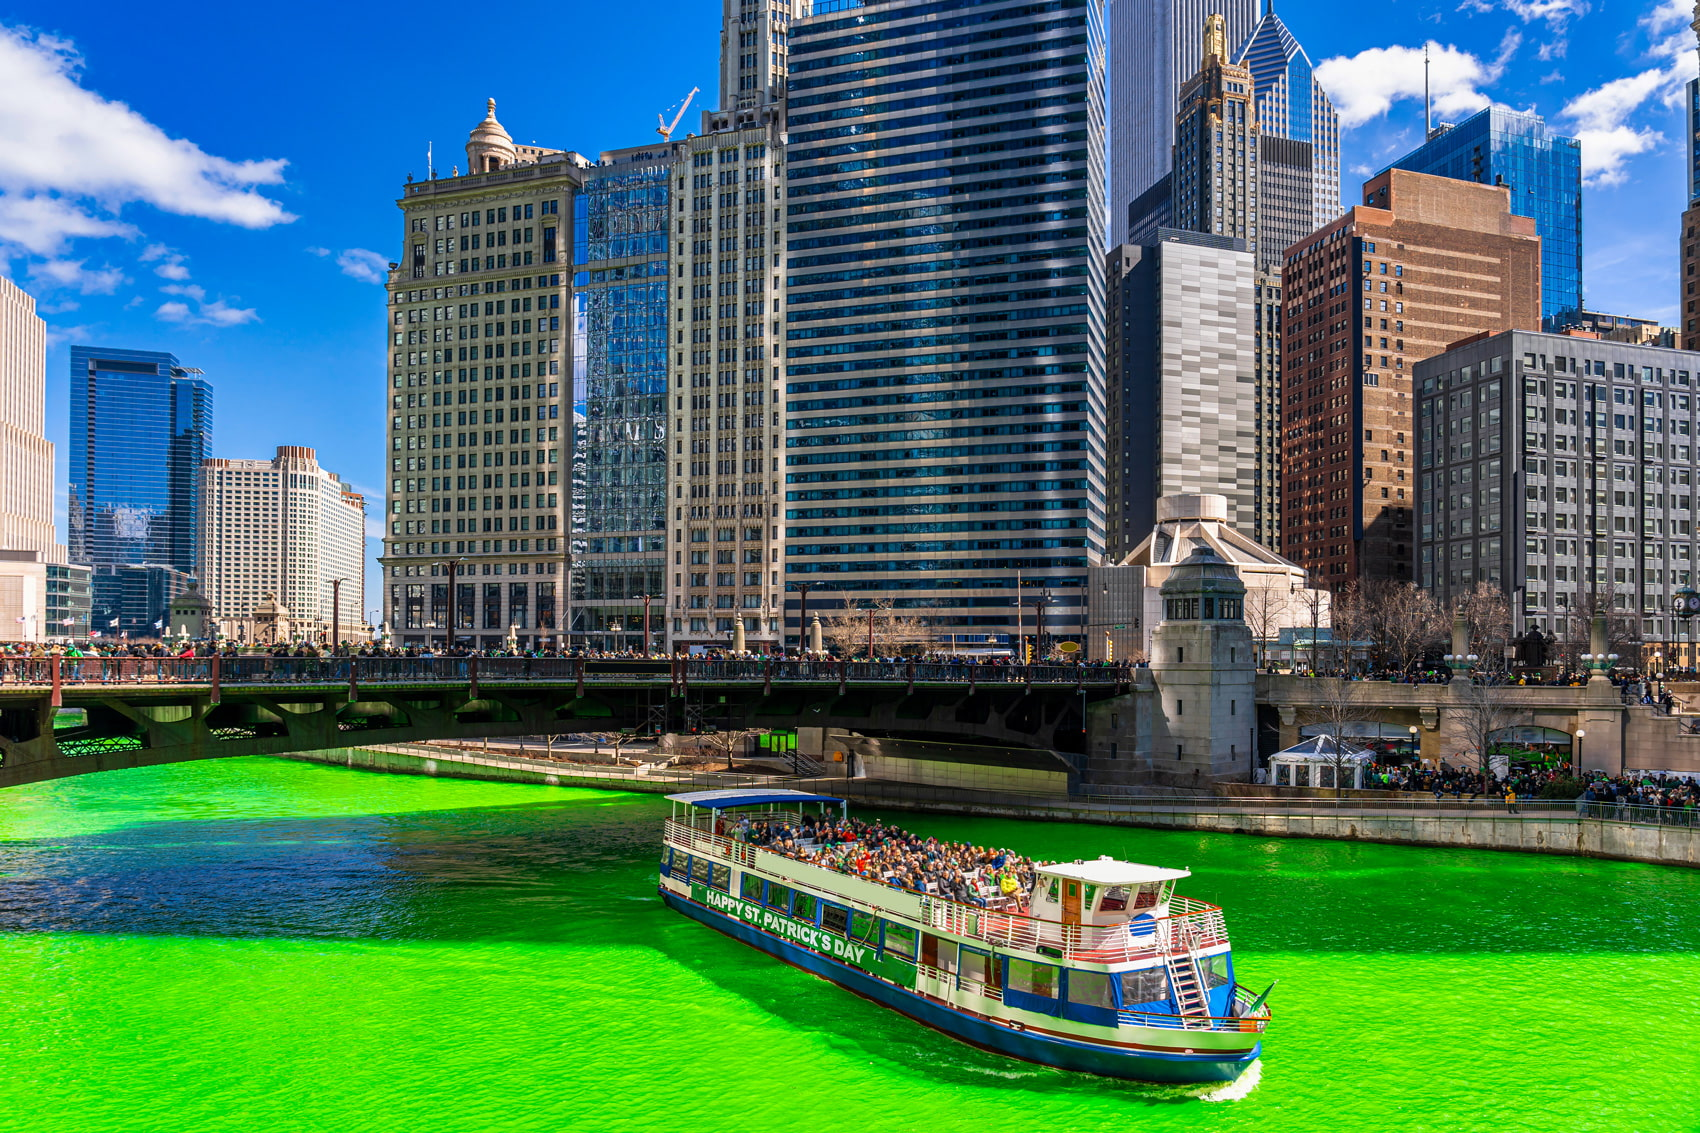 Chicago River green for St. Patrick's Day